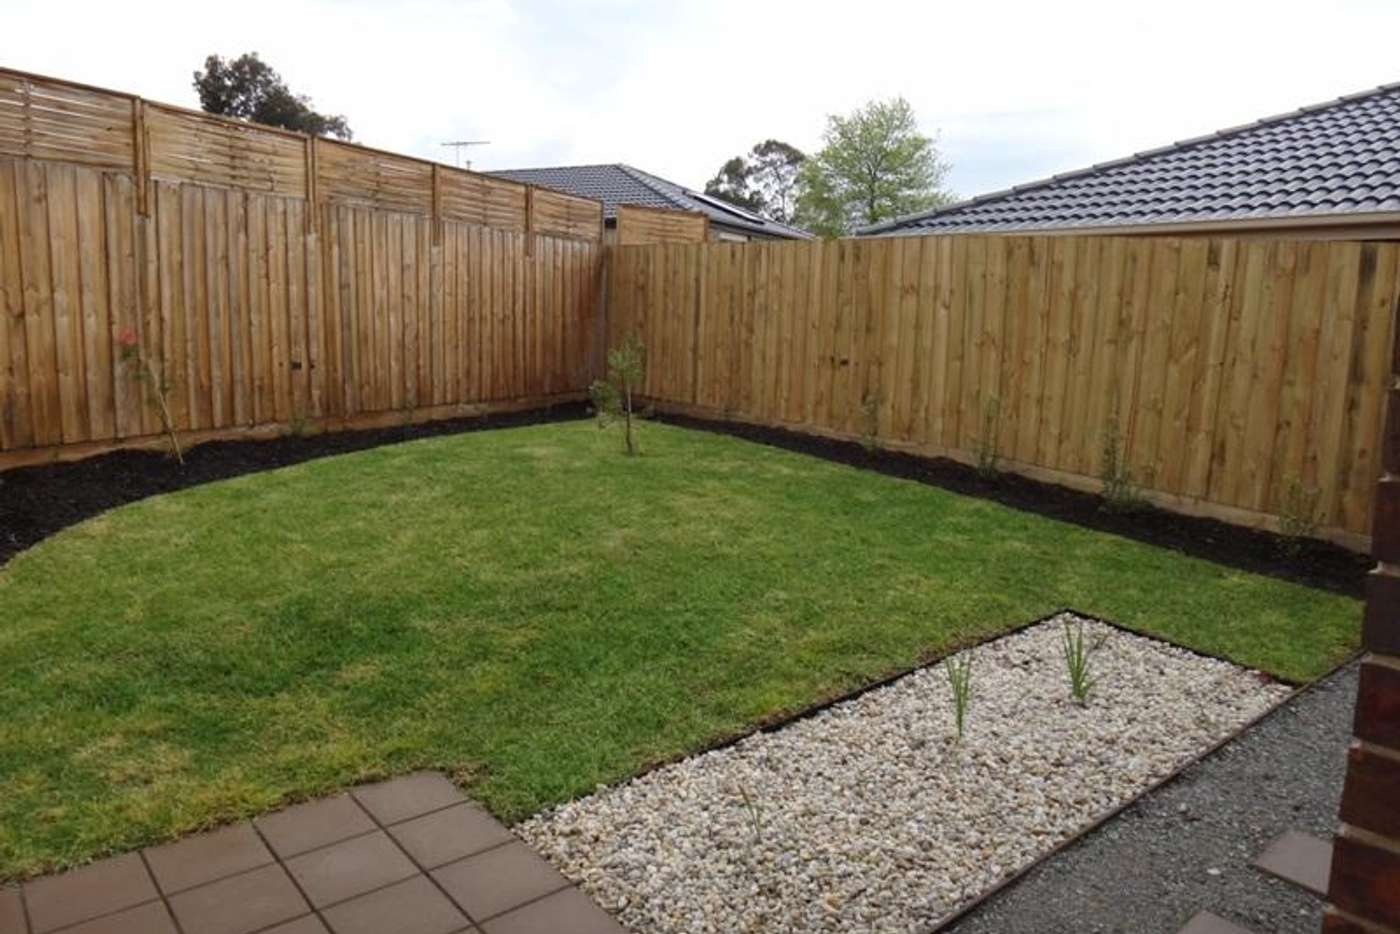 Seventh view of Homely villa listing, 15 Chong Court, Berwick VIC 3806